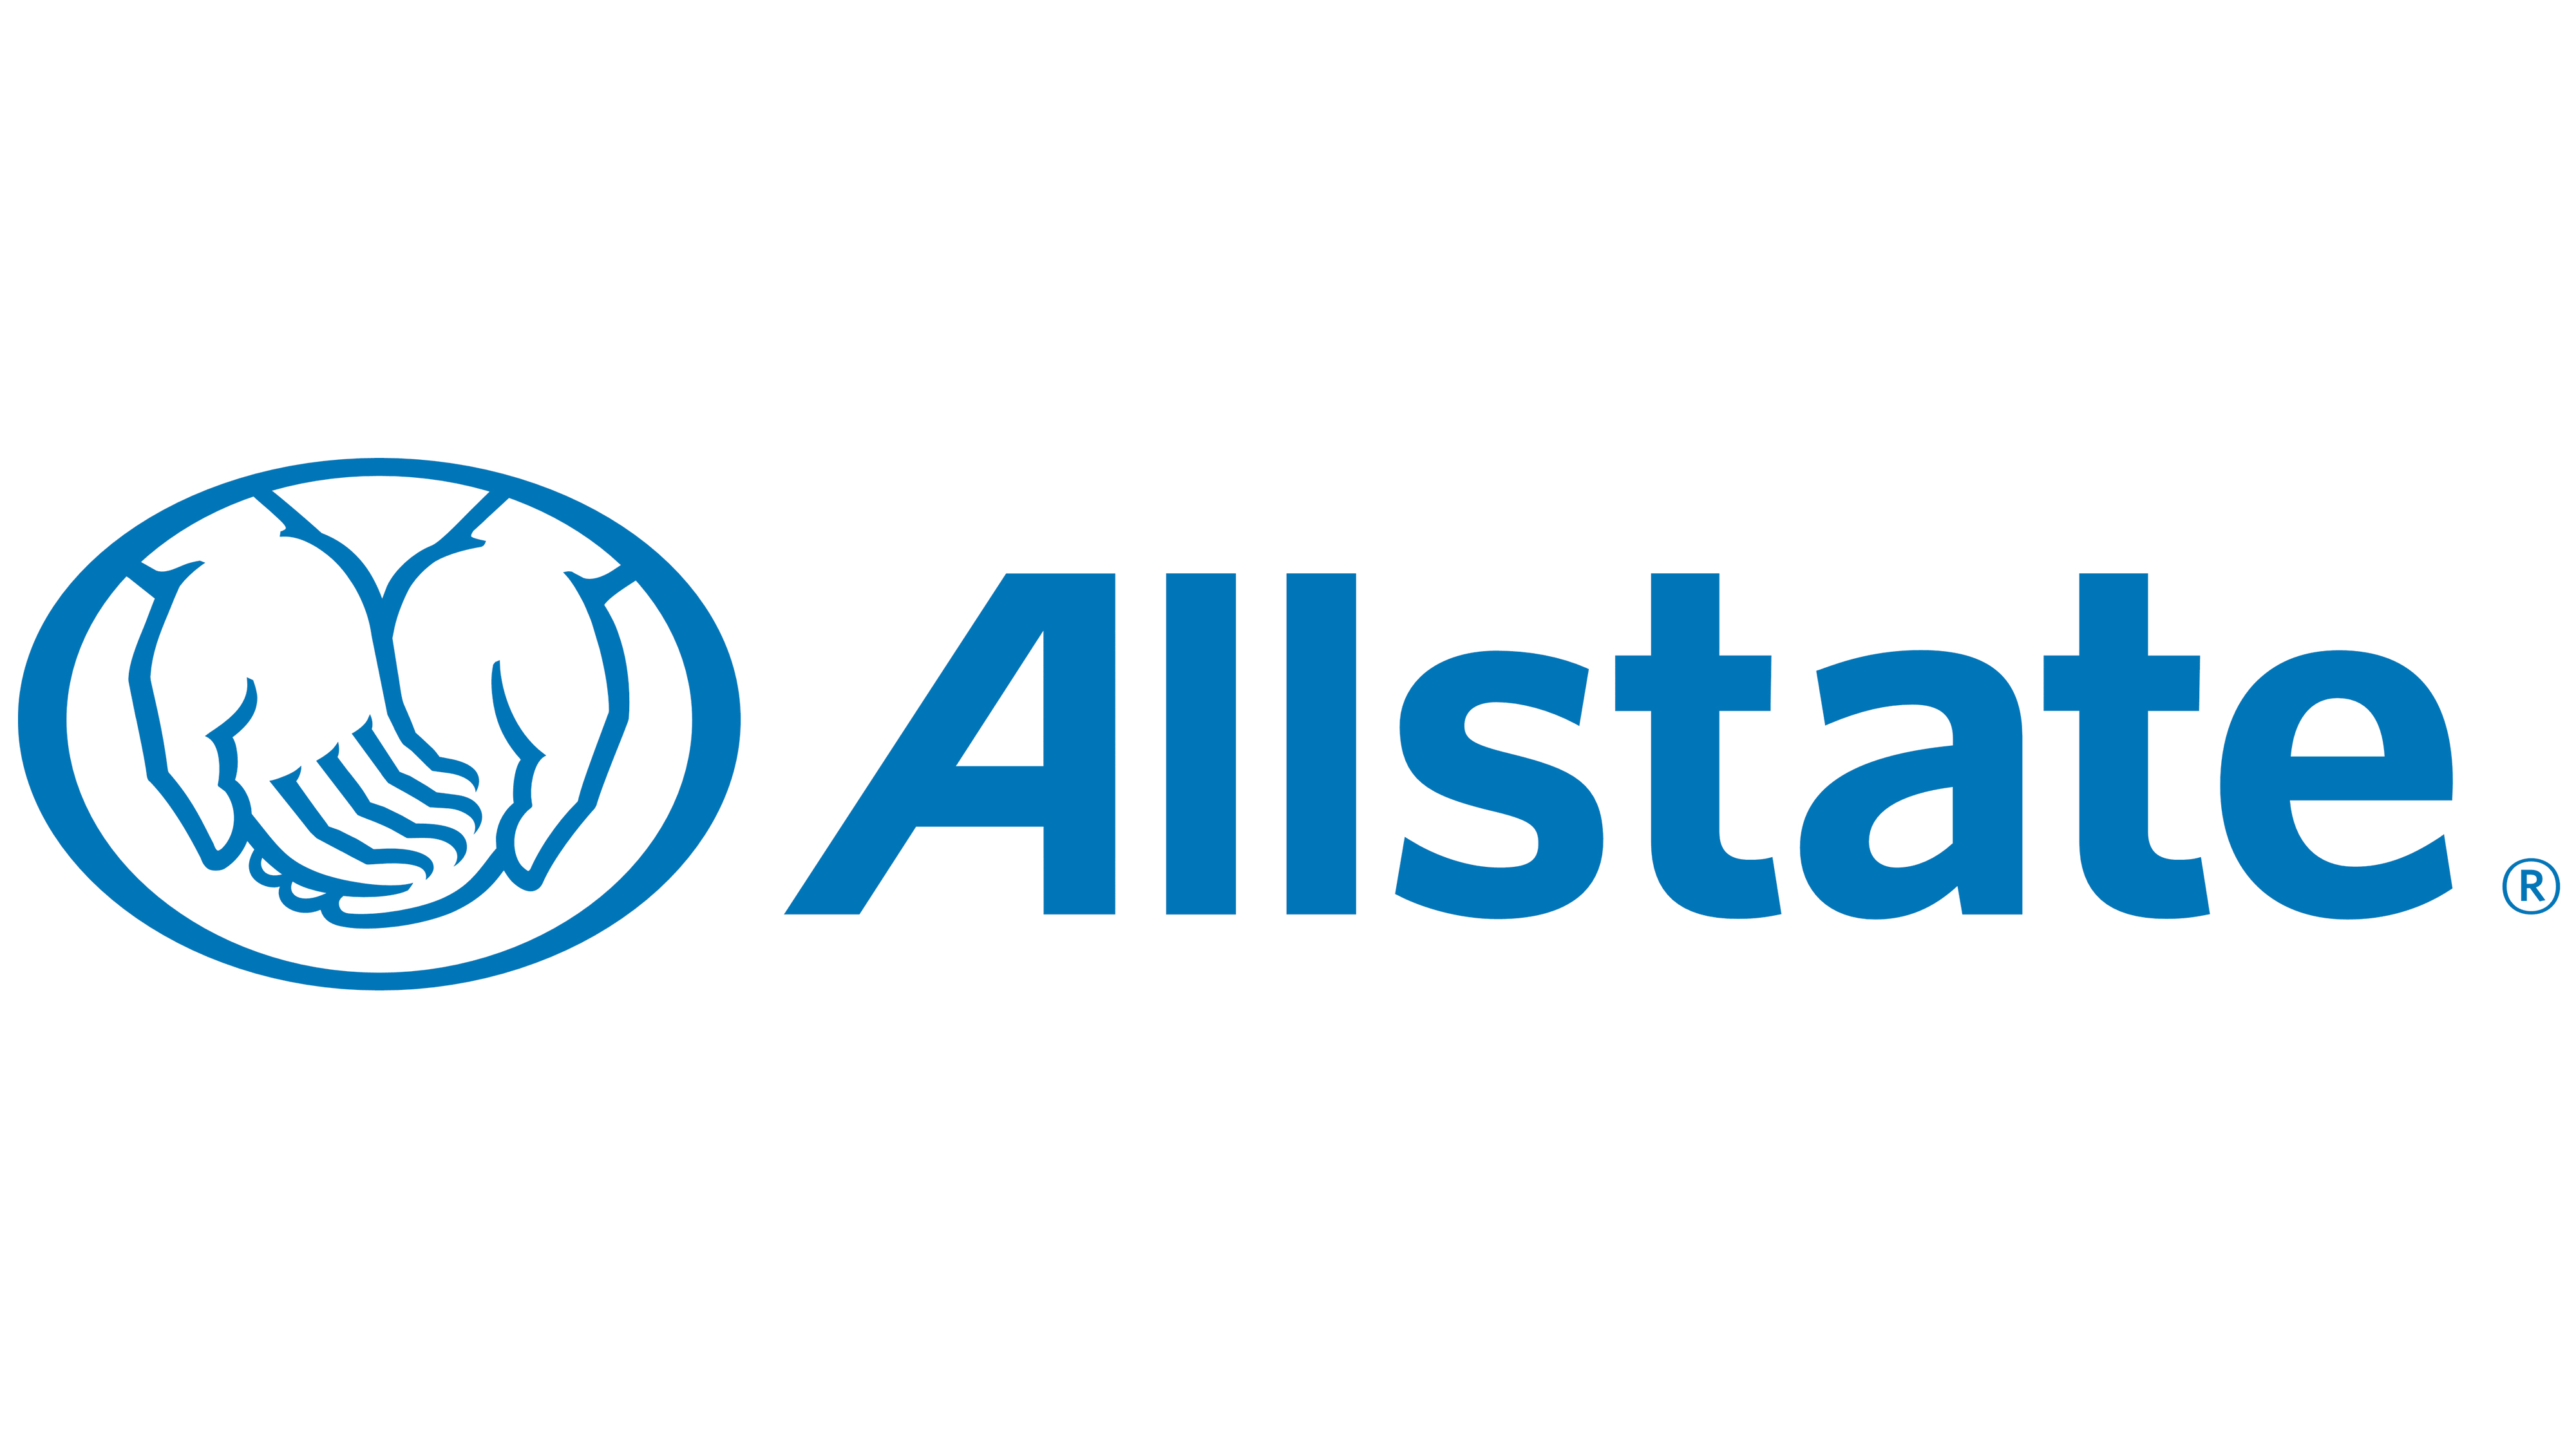 allstate logo the coastal insider rh marketcommoninsider com allstate logo font allstate logo history